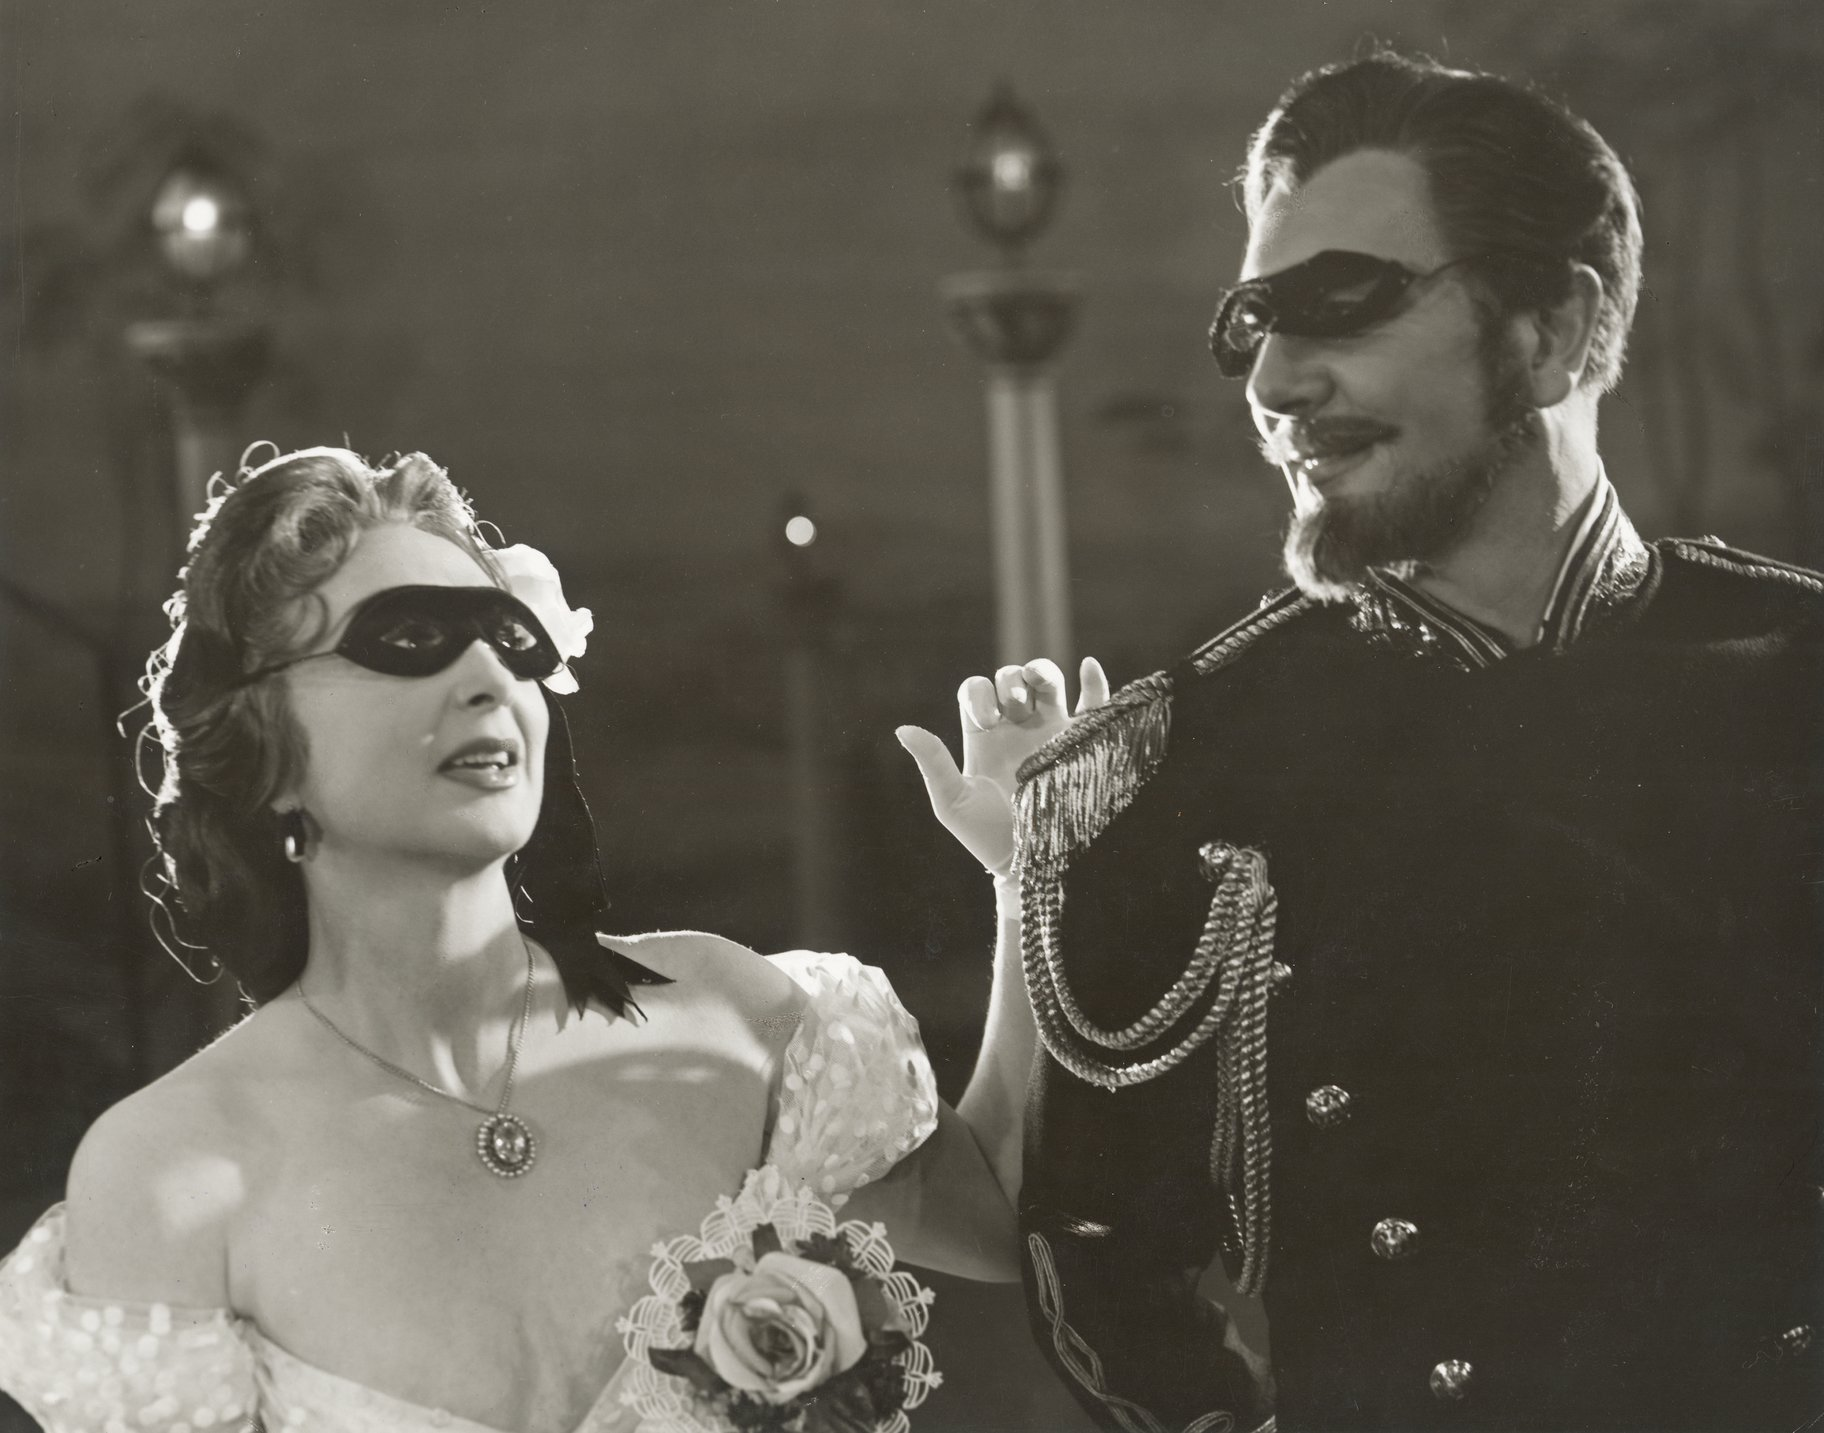 Benedick and Beatrice in their black masks.